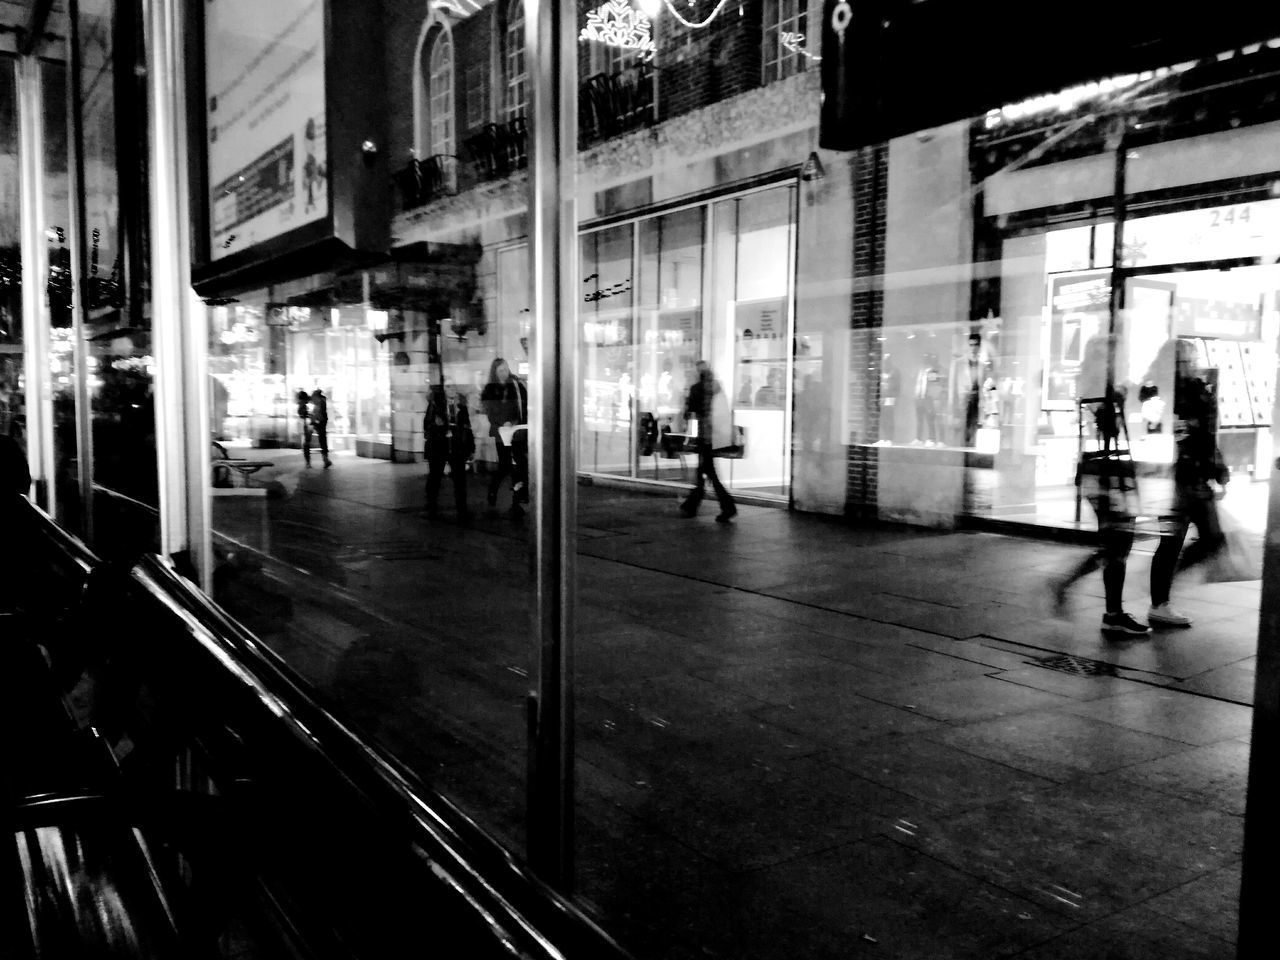 Transportation Reflection Women Adults Only Passenger People Men Public Transportation Large Group Of People Adult Real People City Indoors  Day Only Men Street Photography Streetphotography